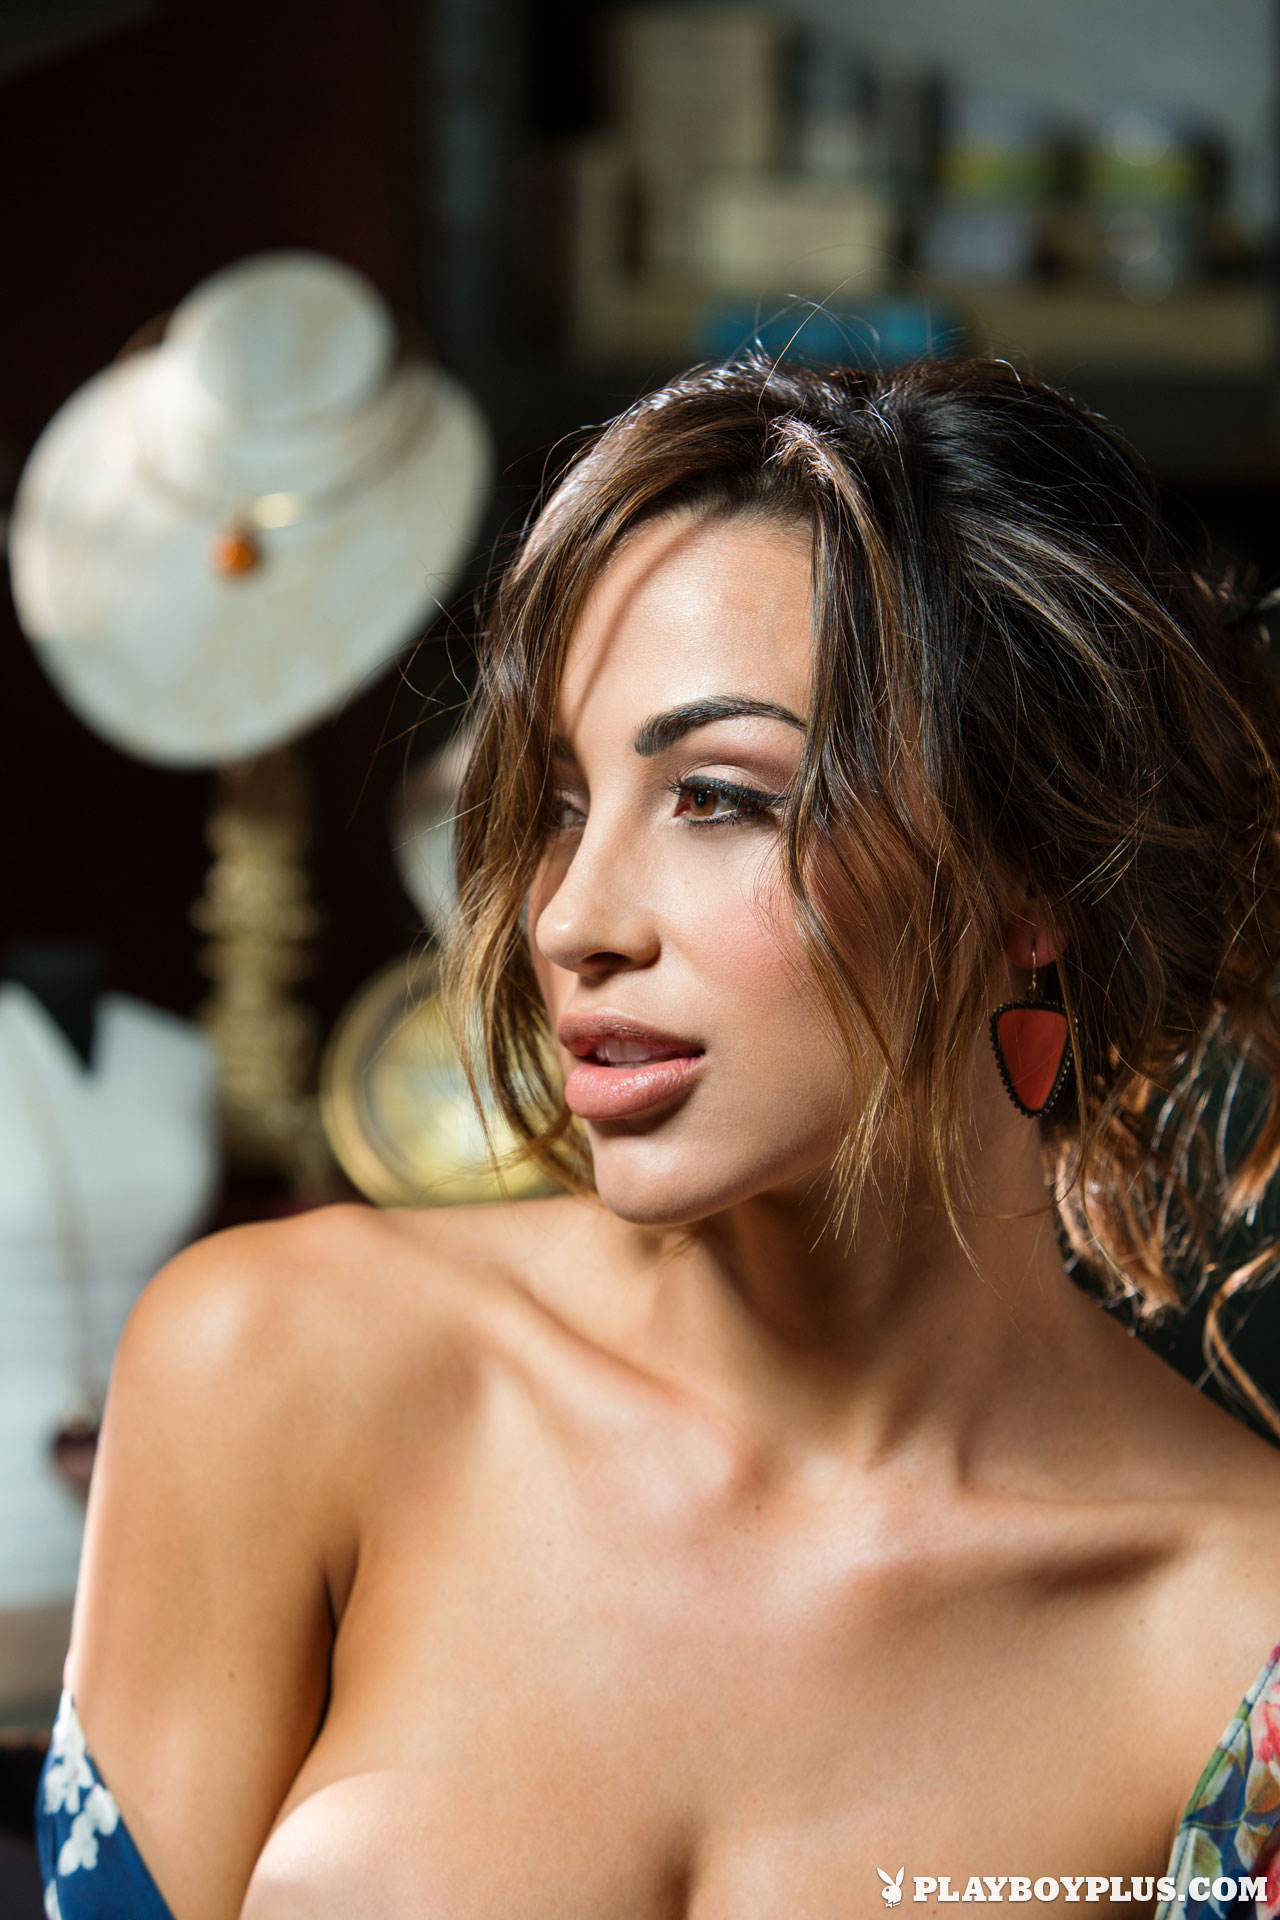 ana cheri hd wallpapers free download